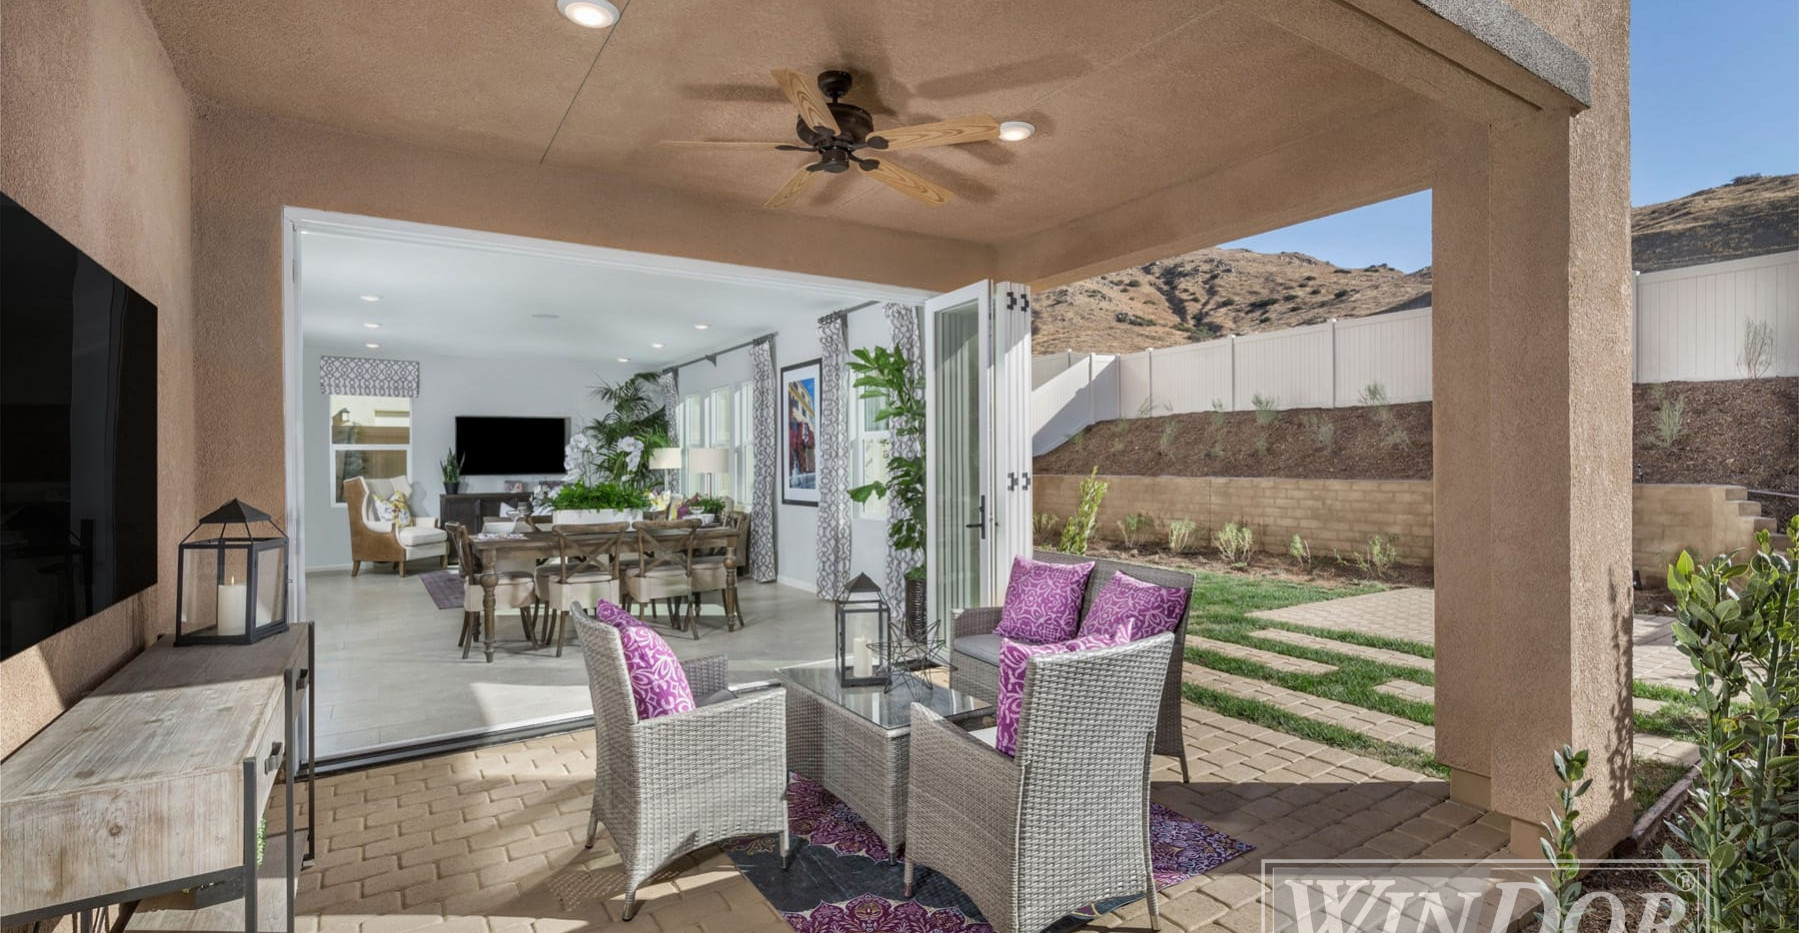 KBIE_Sorrel-Terramor_Res3-Patio-OpenSlid